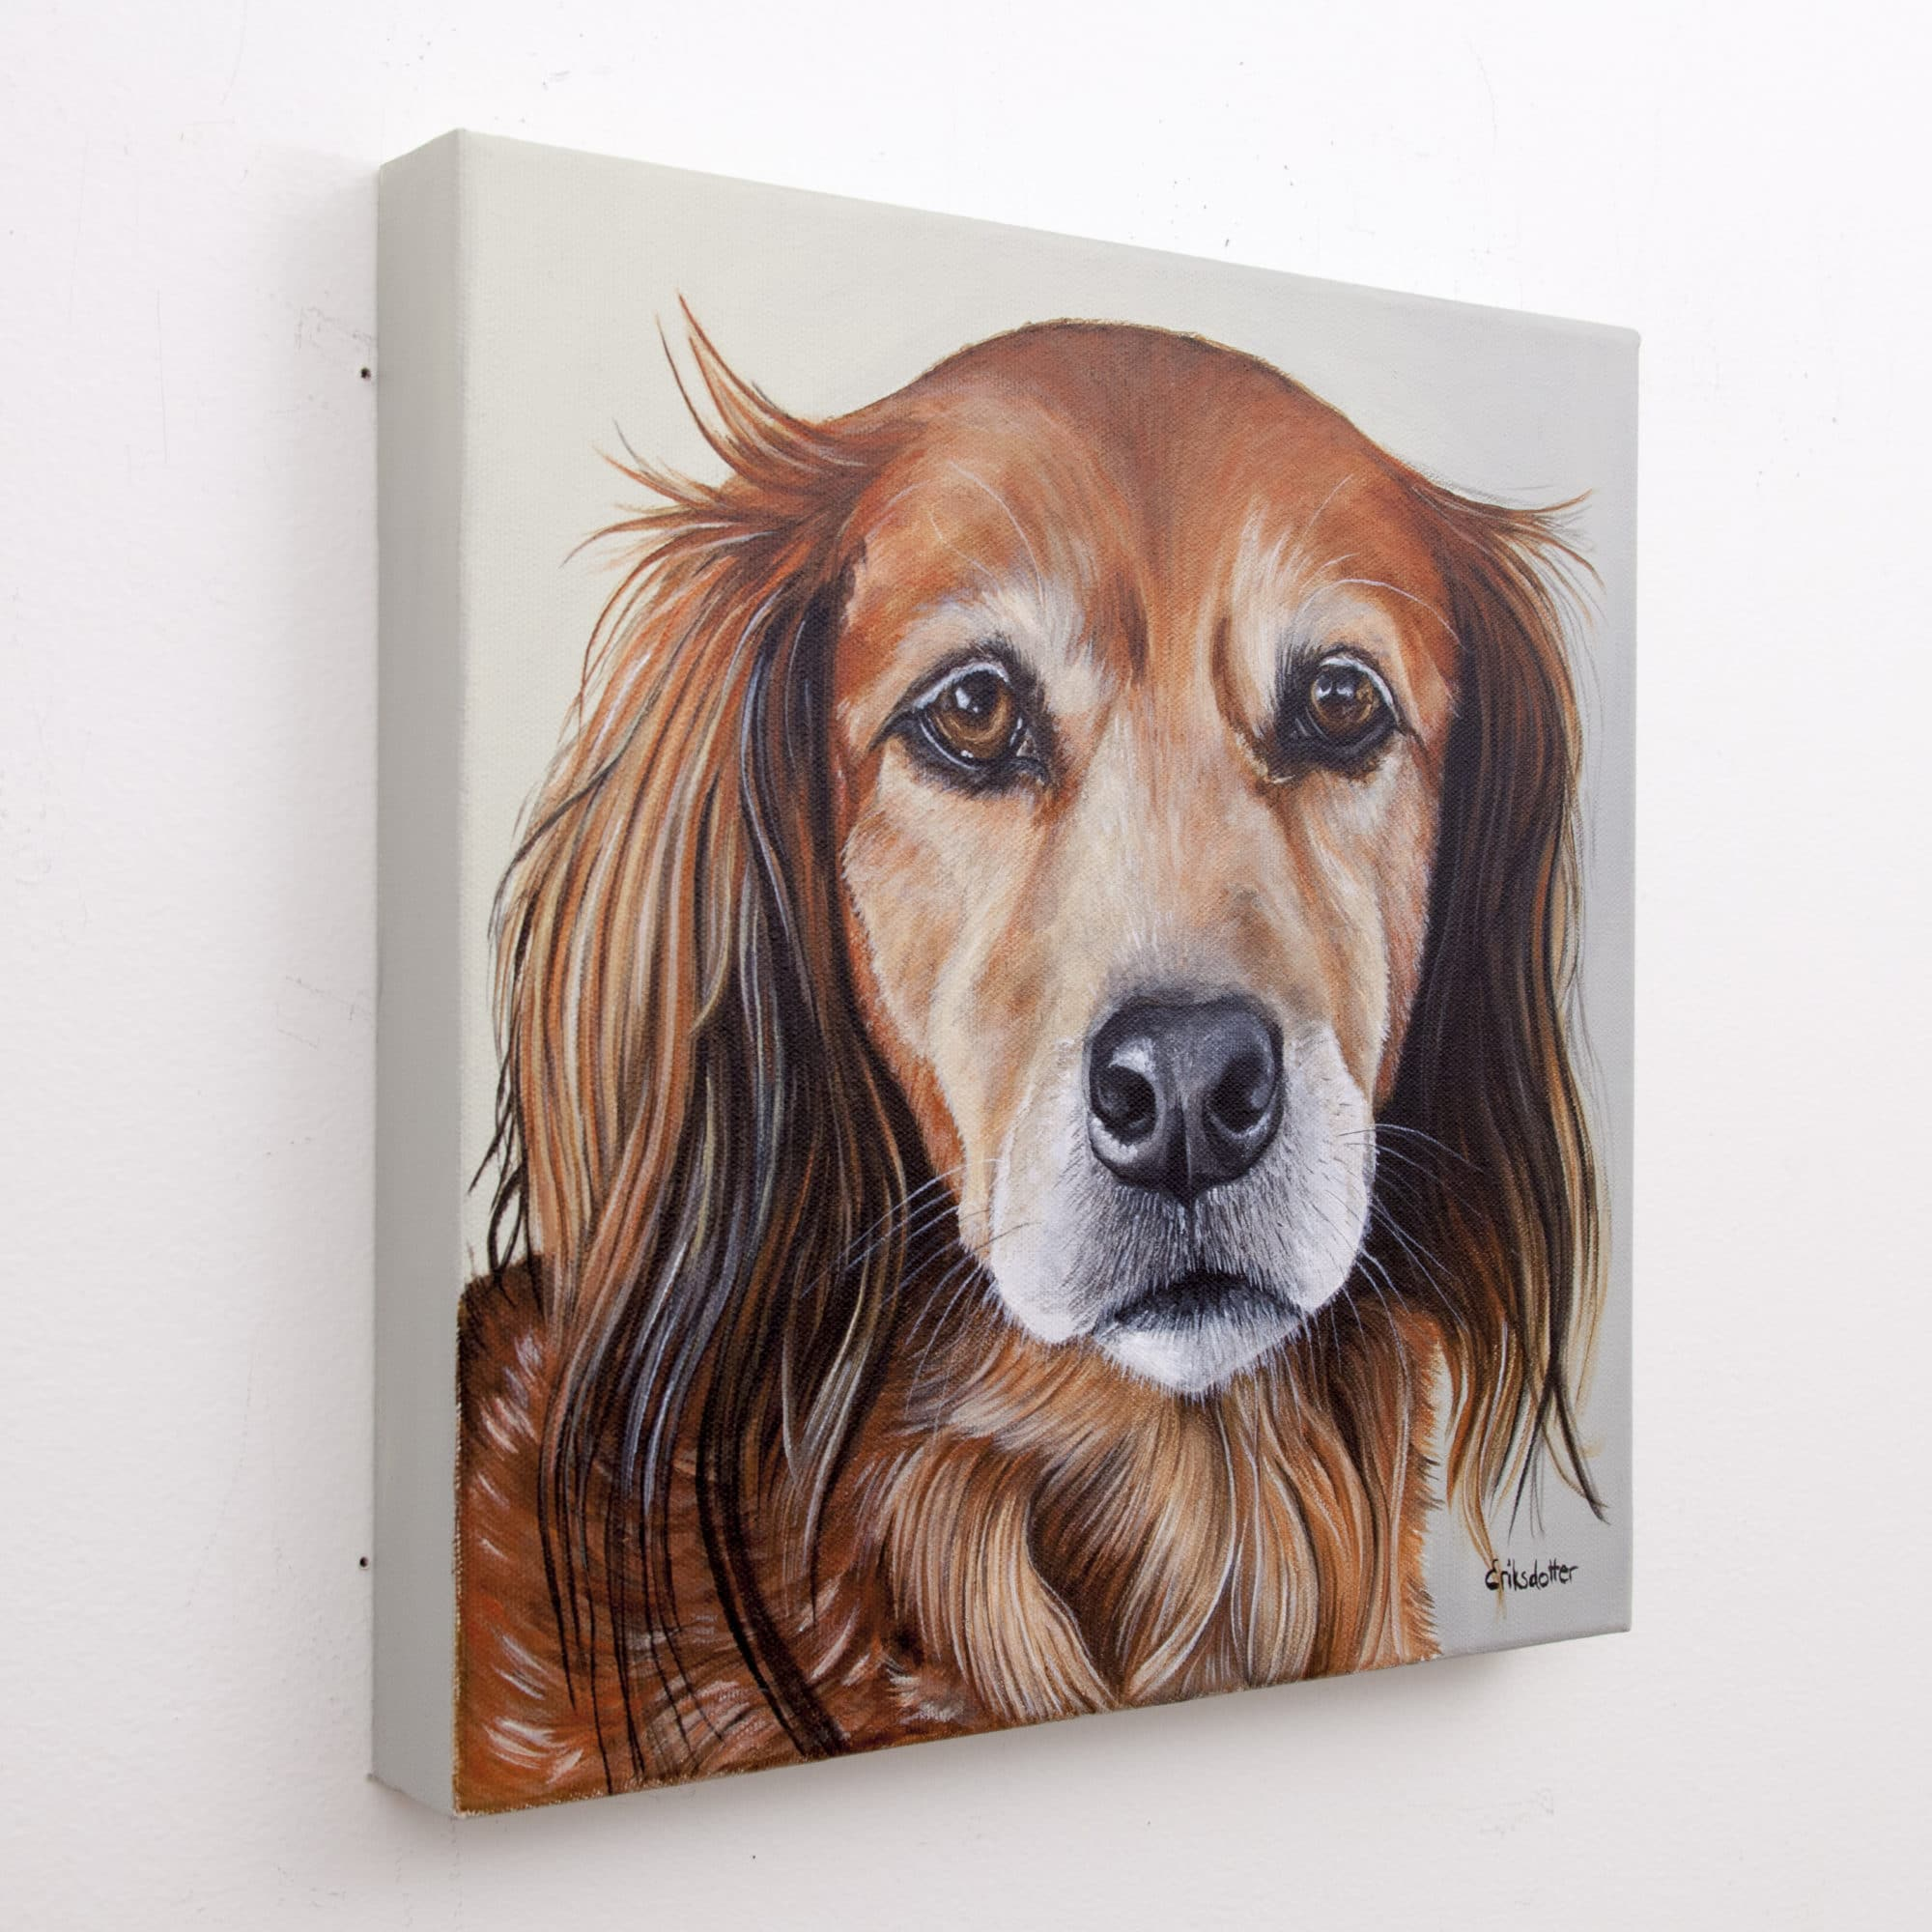 Canela's Portrait - original pet portrait painting by Erica Eriksdotter